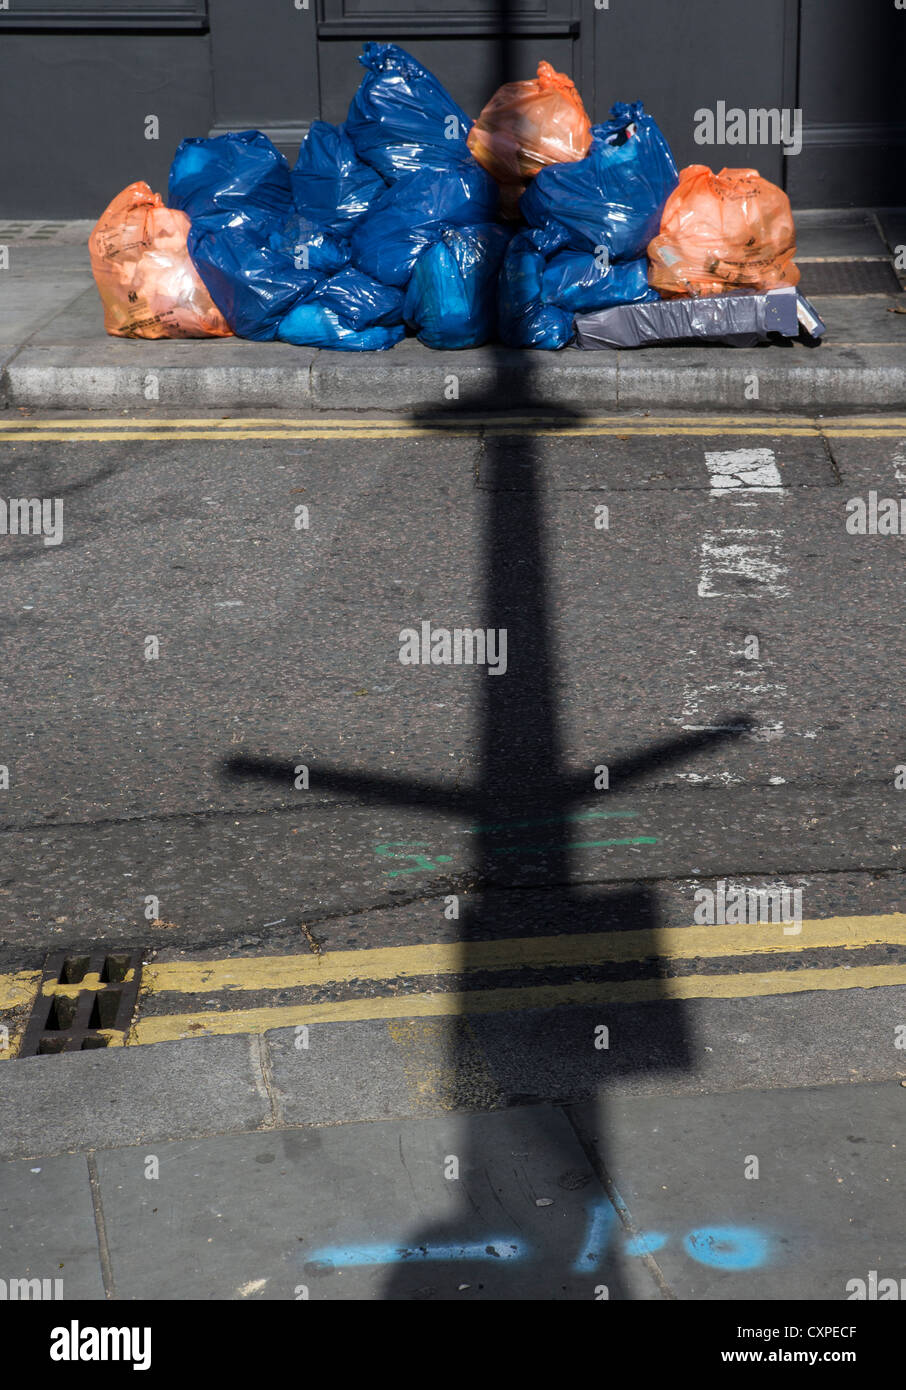 The shadow of a lamp-post falling across an empty street, and over a pile of blue and orange refuse sacks - Stock Image